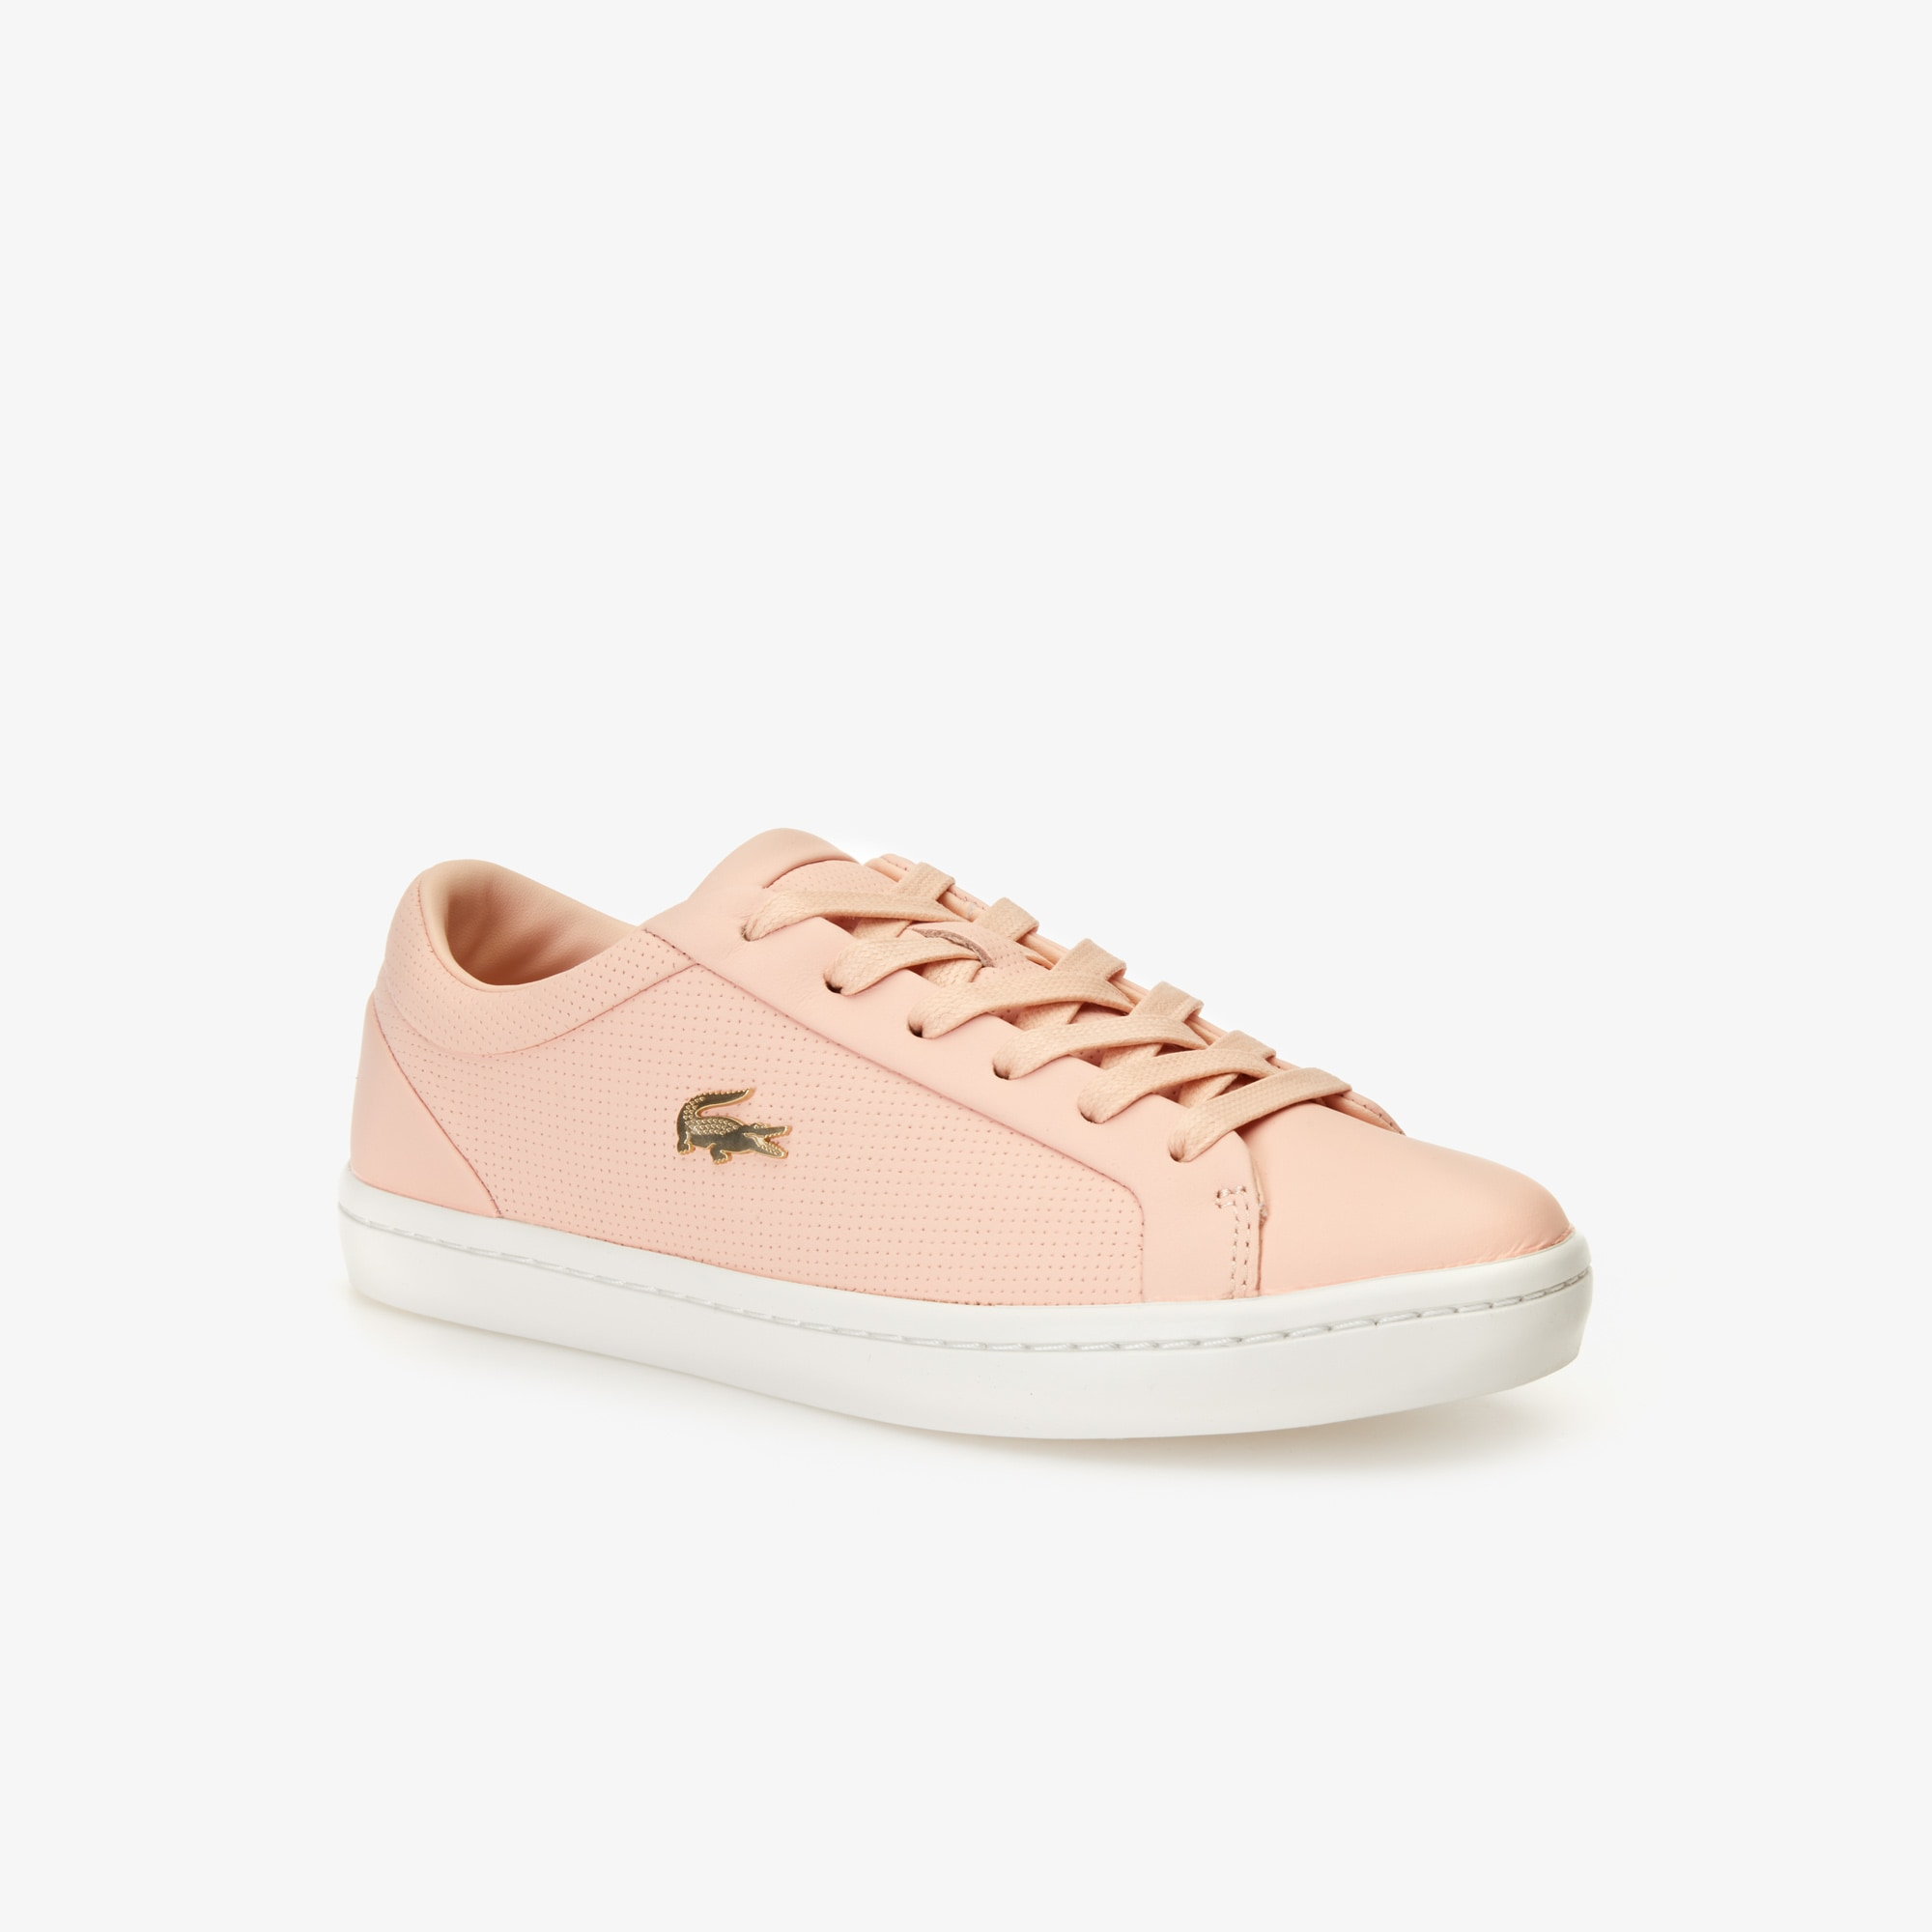 Chaussures Lacoste Preview Lacoste Lacoste Chaussures Chaussures Lacoste Preview Preview Chaussures Chaussures Preview qtxwPpPC